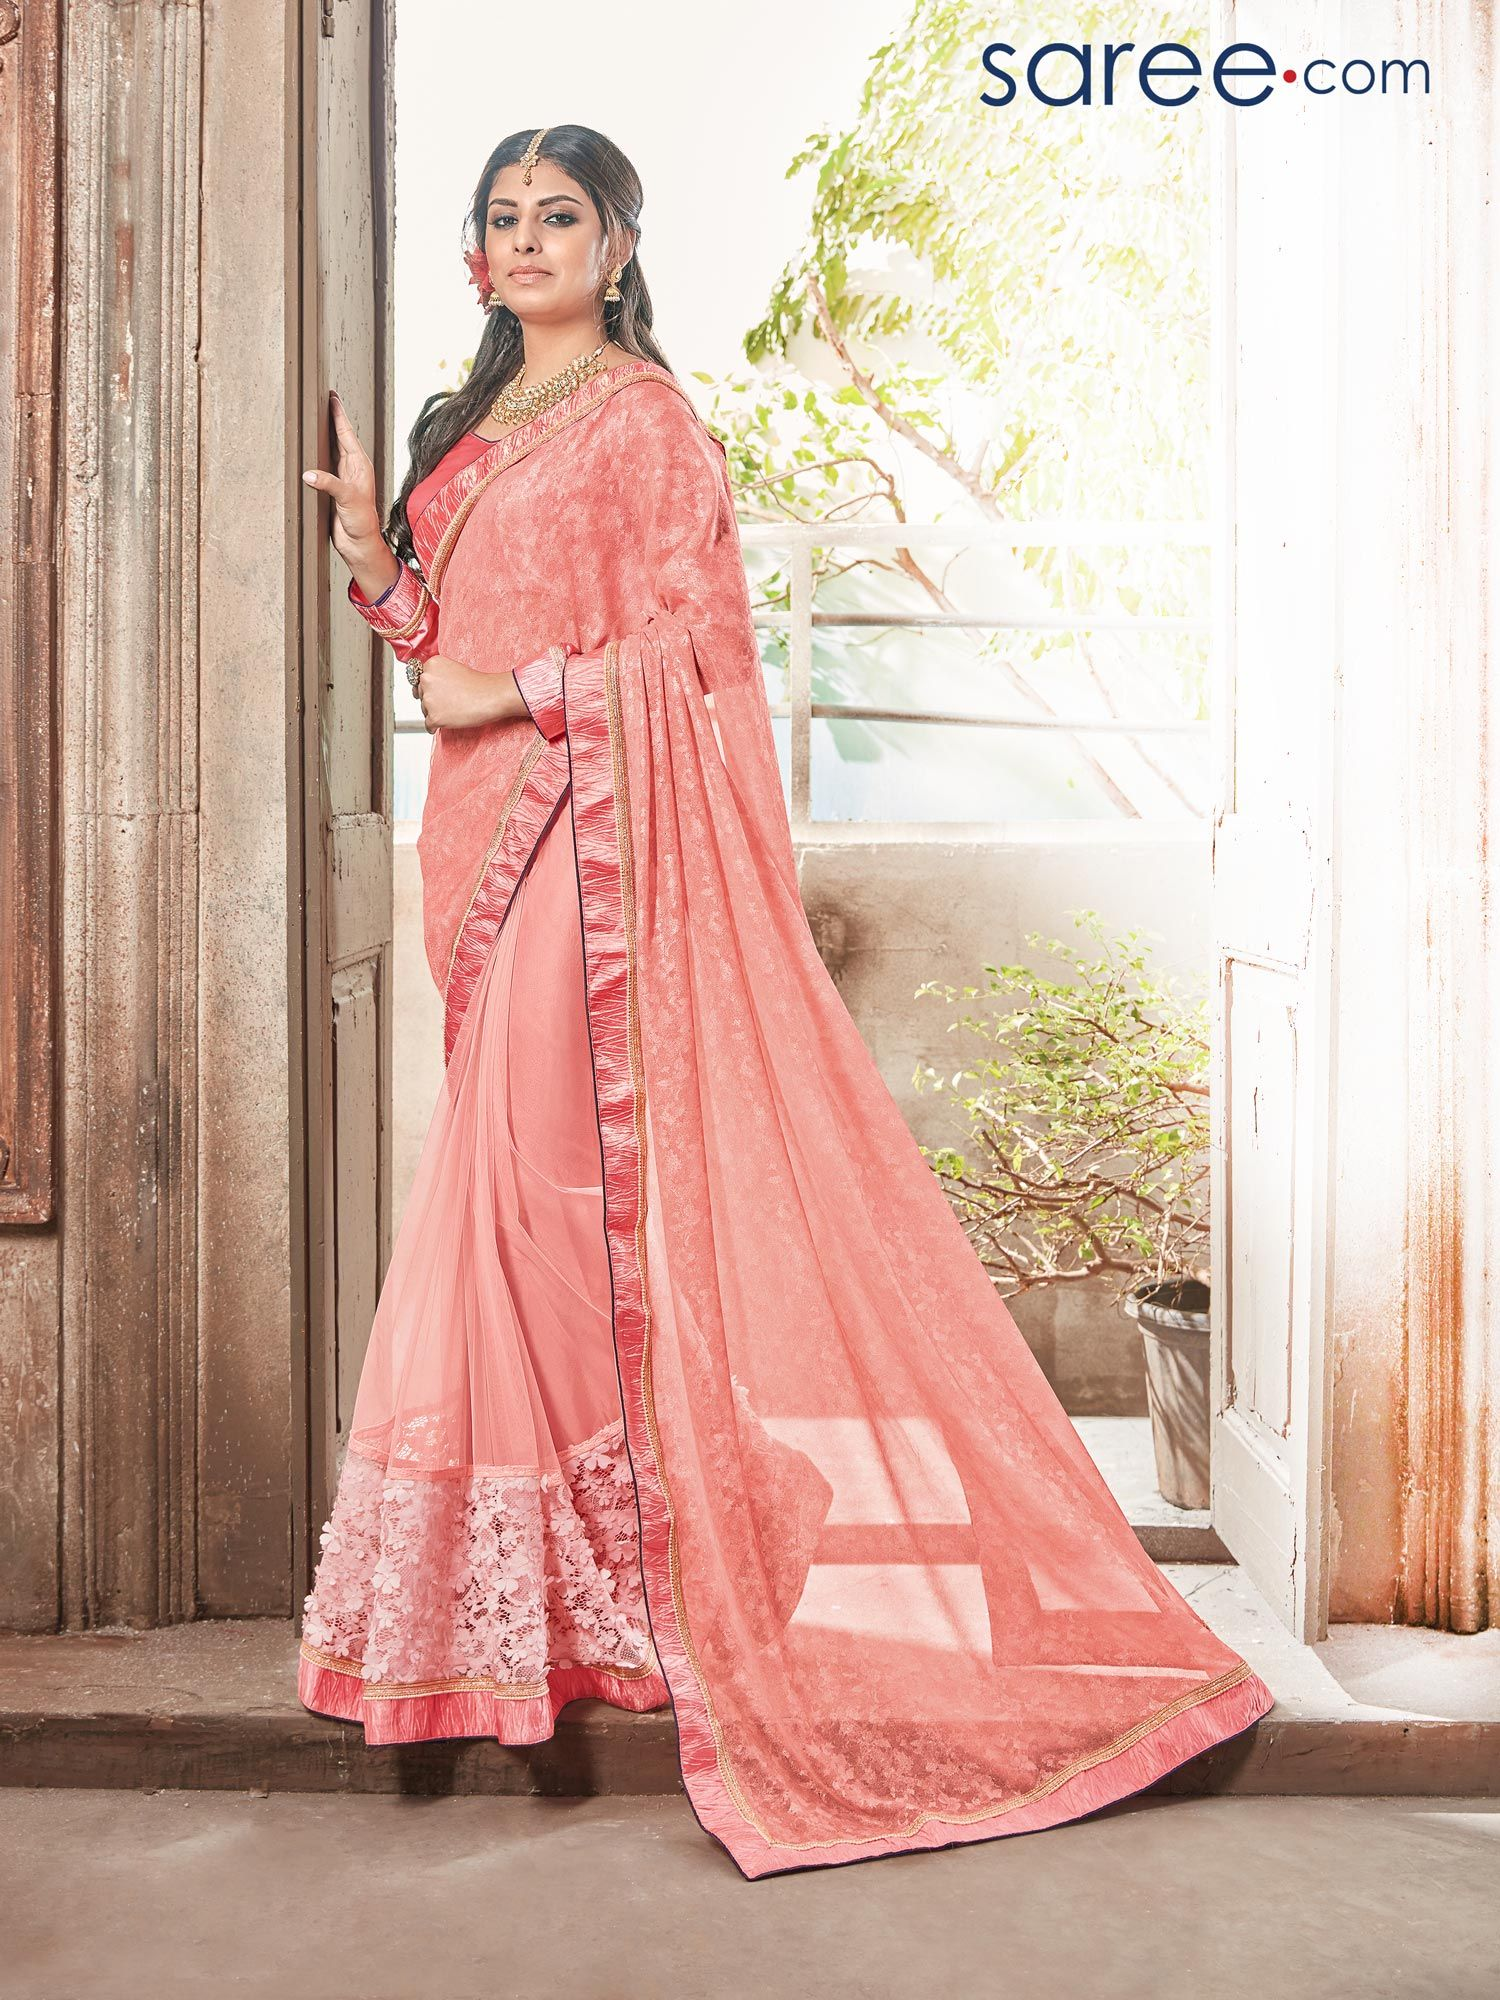 Dresses to wear to a wedding reception  PINK GEORGETTE SAREE WITH EMBROIDERY WORK  Sarees  Pinterest